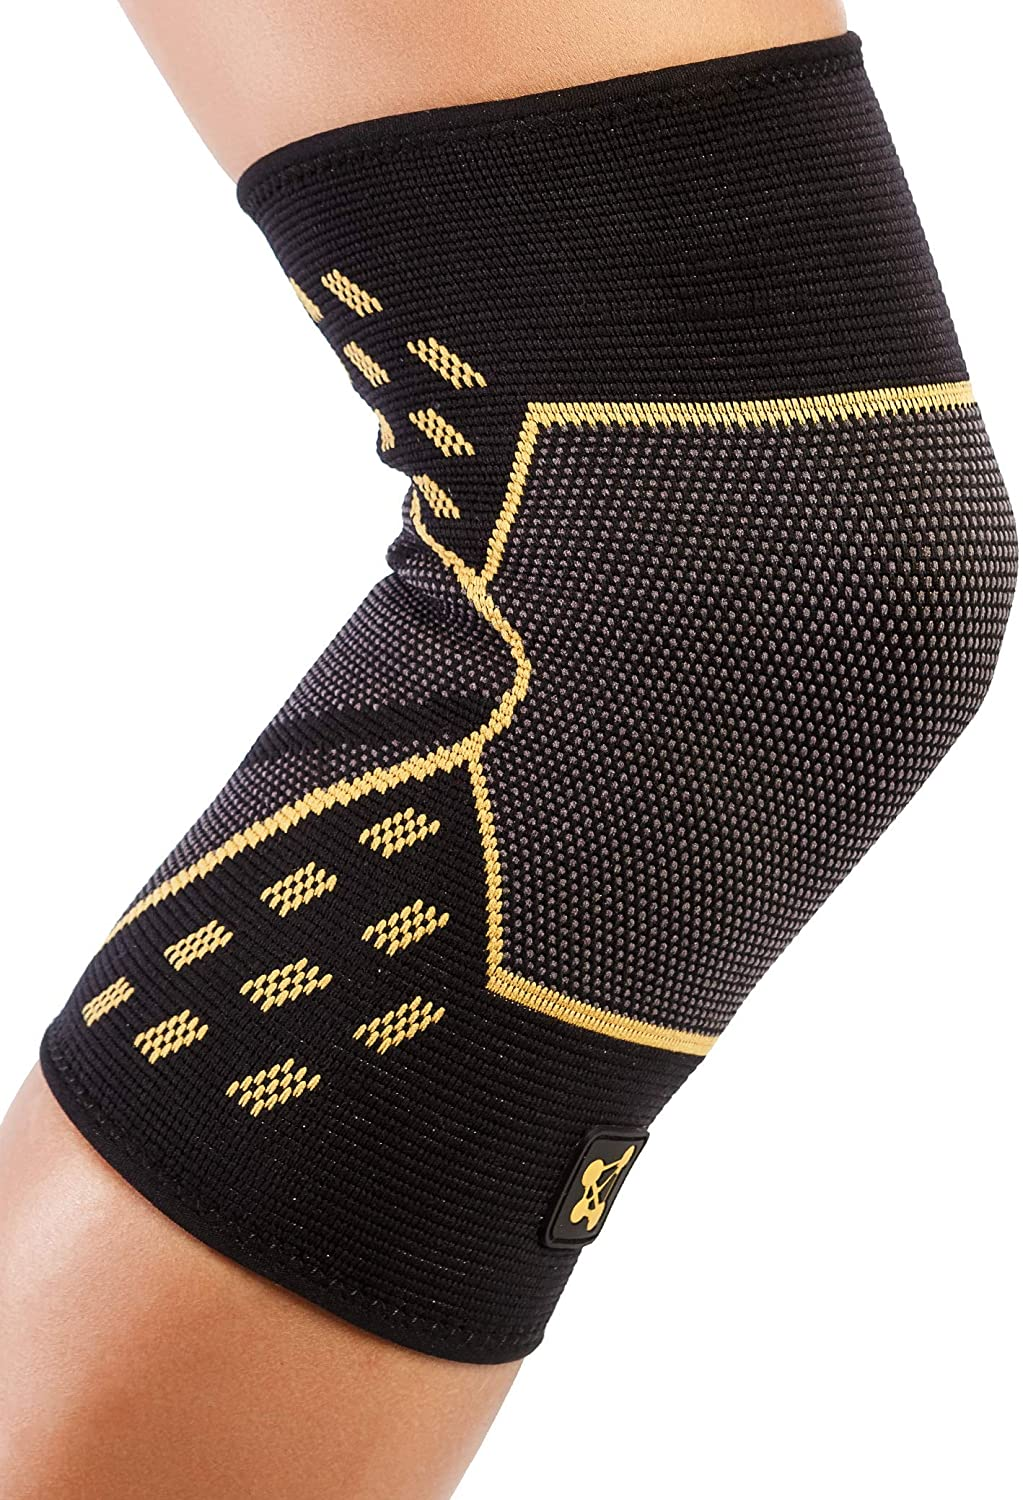 Review of CopperJoint Knee Compression Sleeve PRO - Copper-Infused